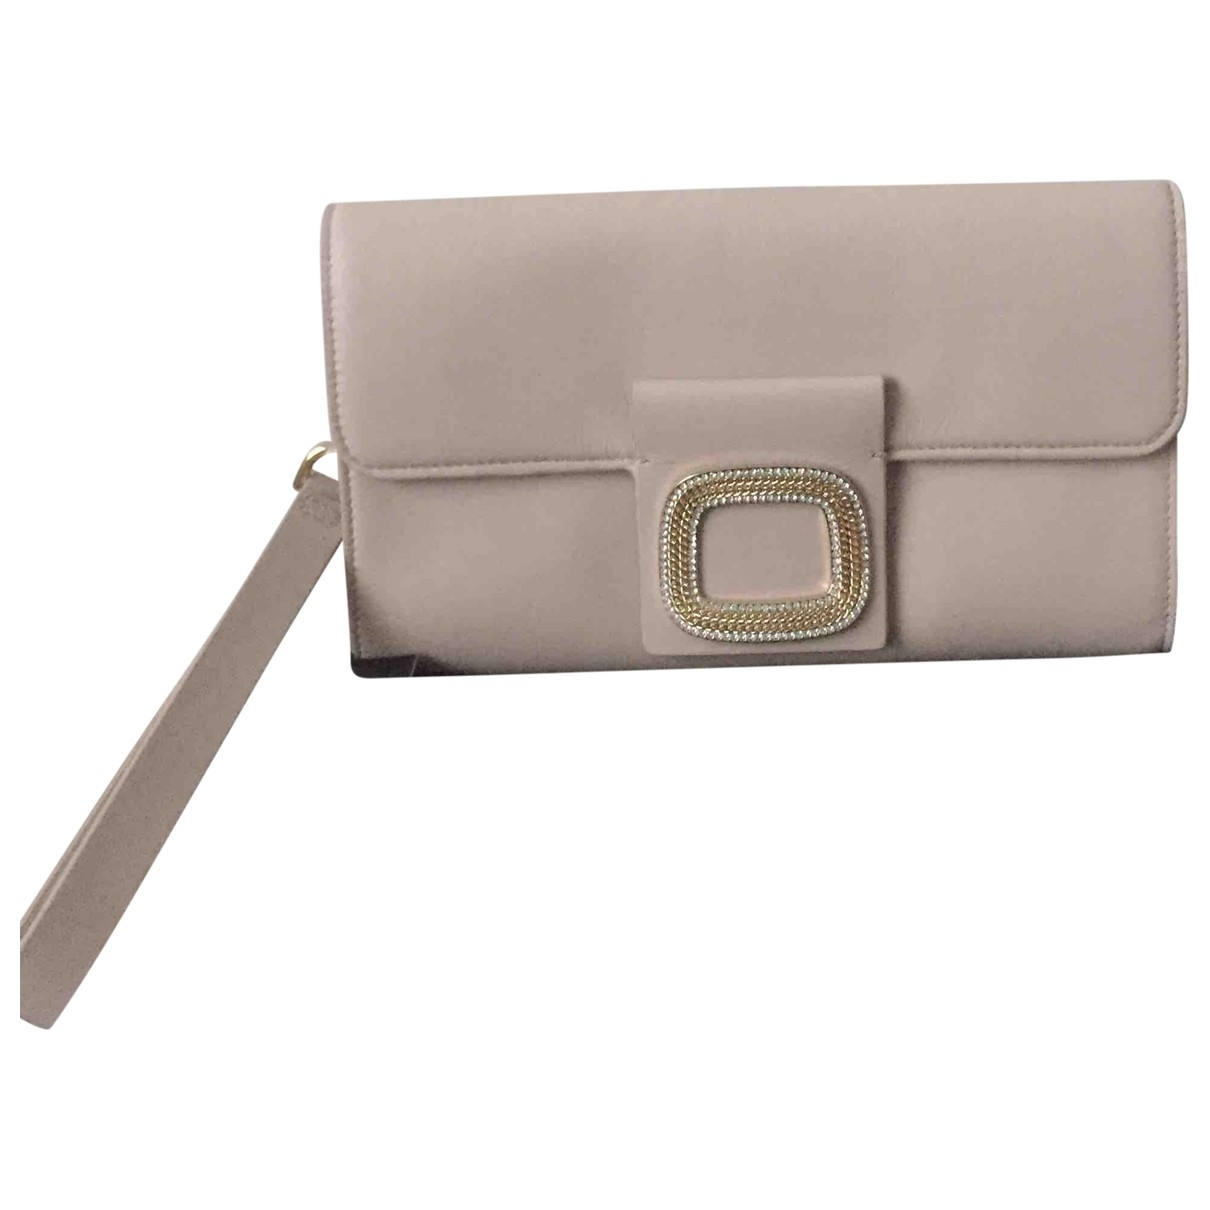 Guess \N Pink Leather Clutch bag for Women \N